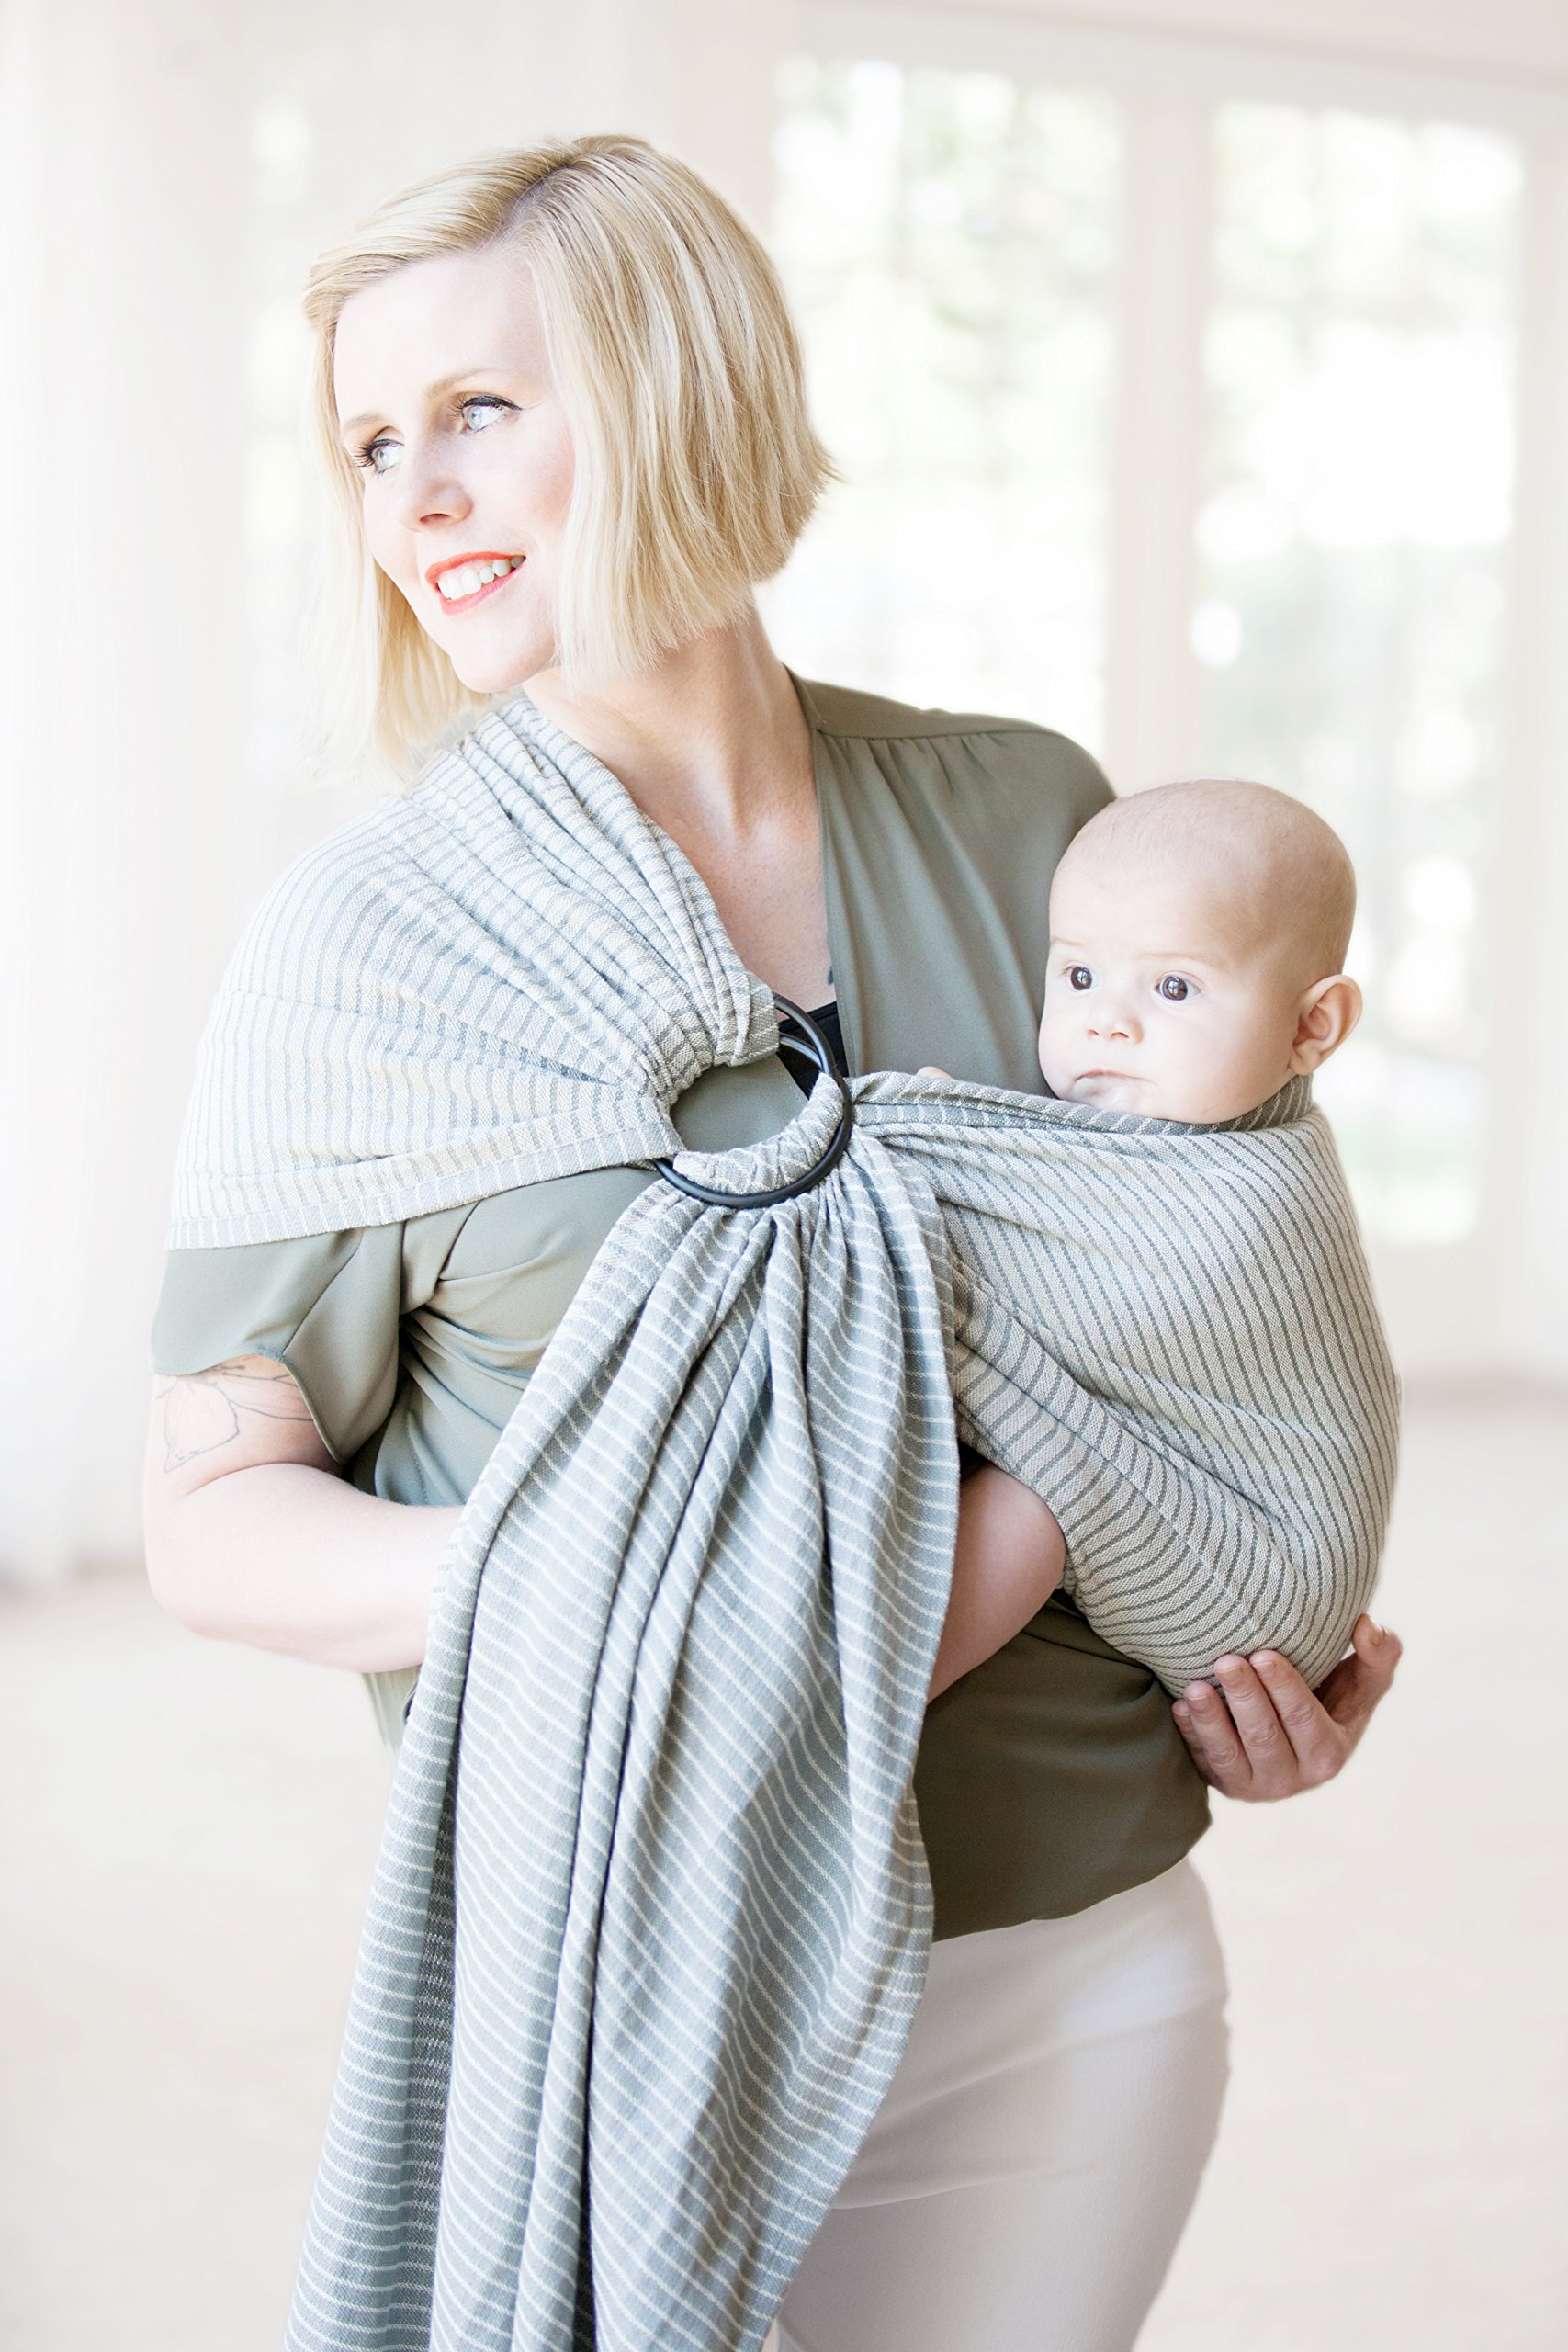 Moby Ring Sling Baby Carrier (Silver Streak) - Ring Sling Carrier For Babywearing -Baby Sling For Baby Wearing, Breastfeeding, And Keeping Baby Close - Baby Carrier For Newborns, Infants, and Toddlers